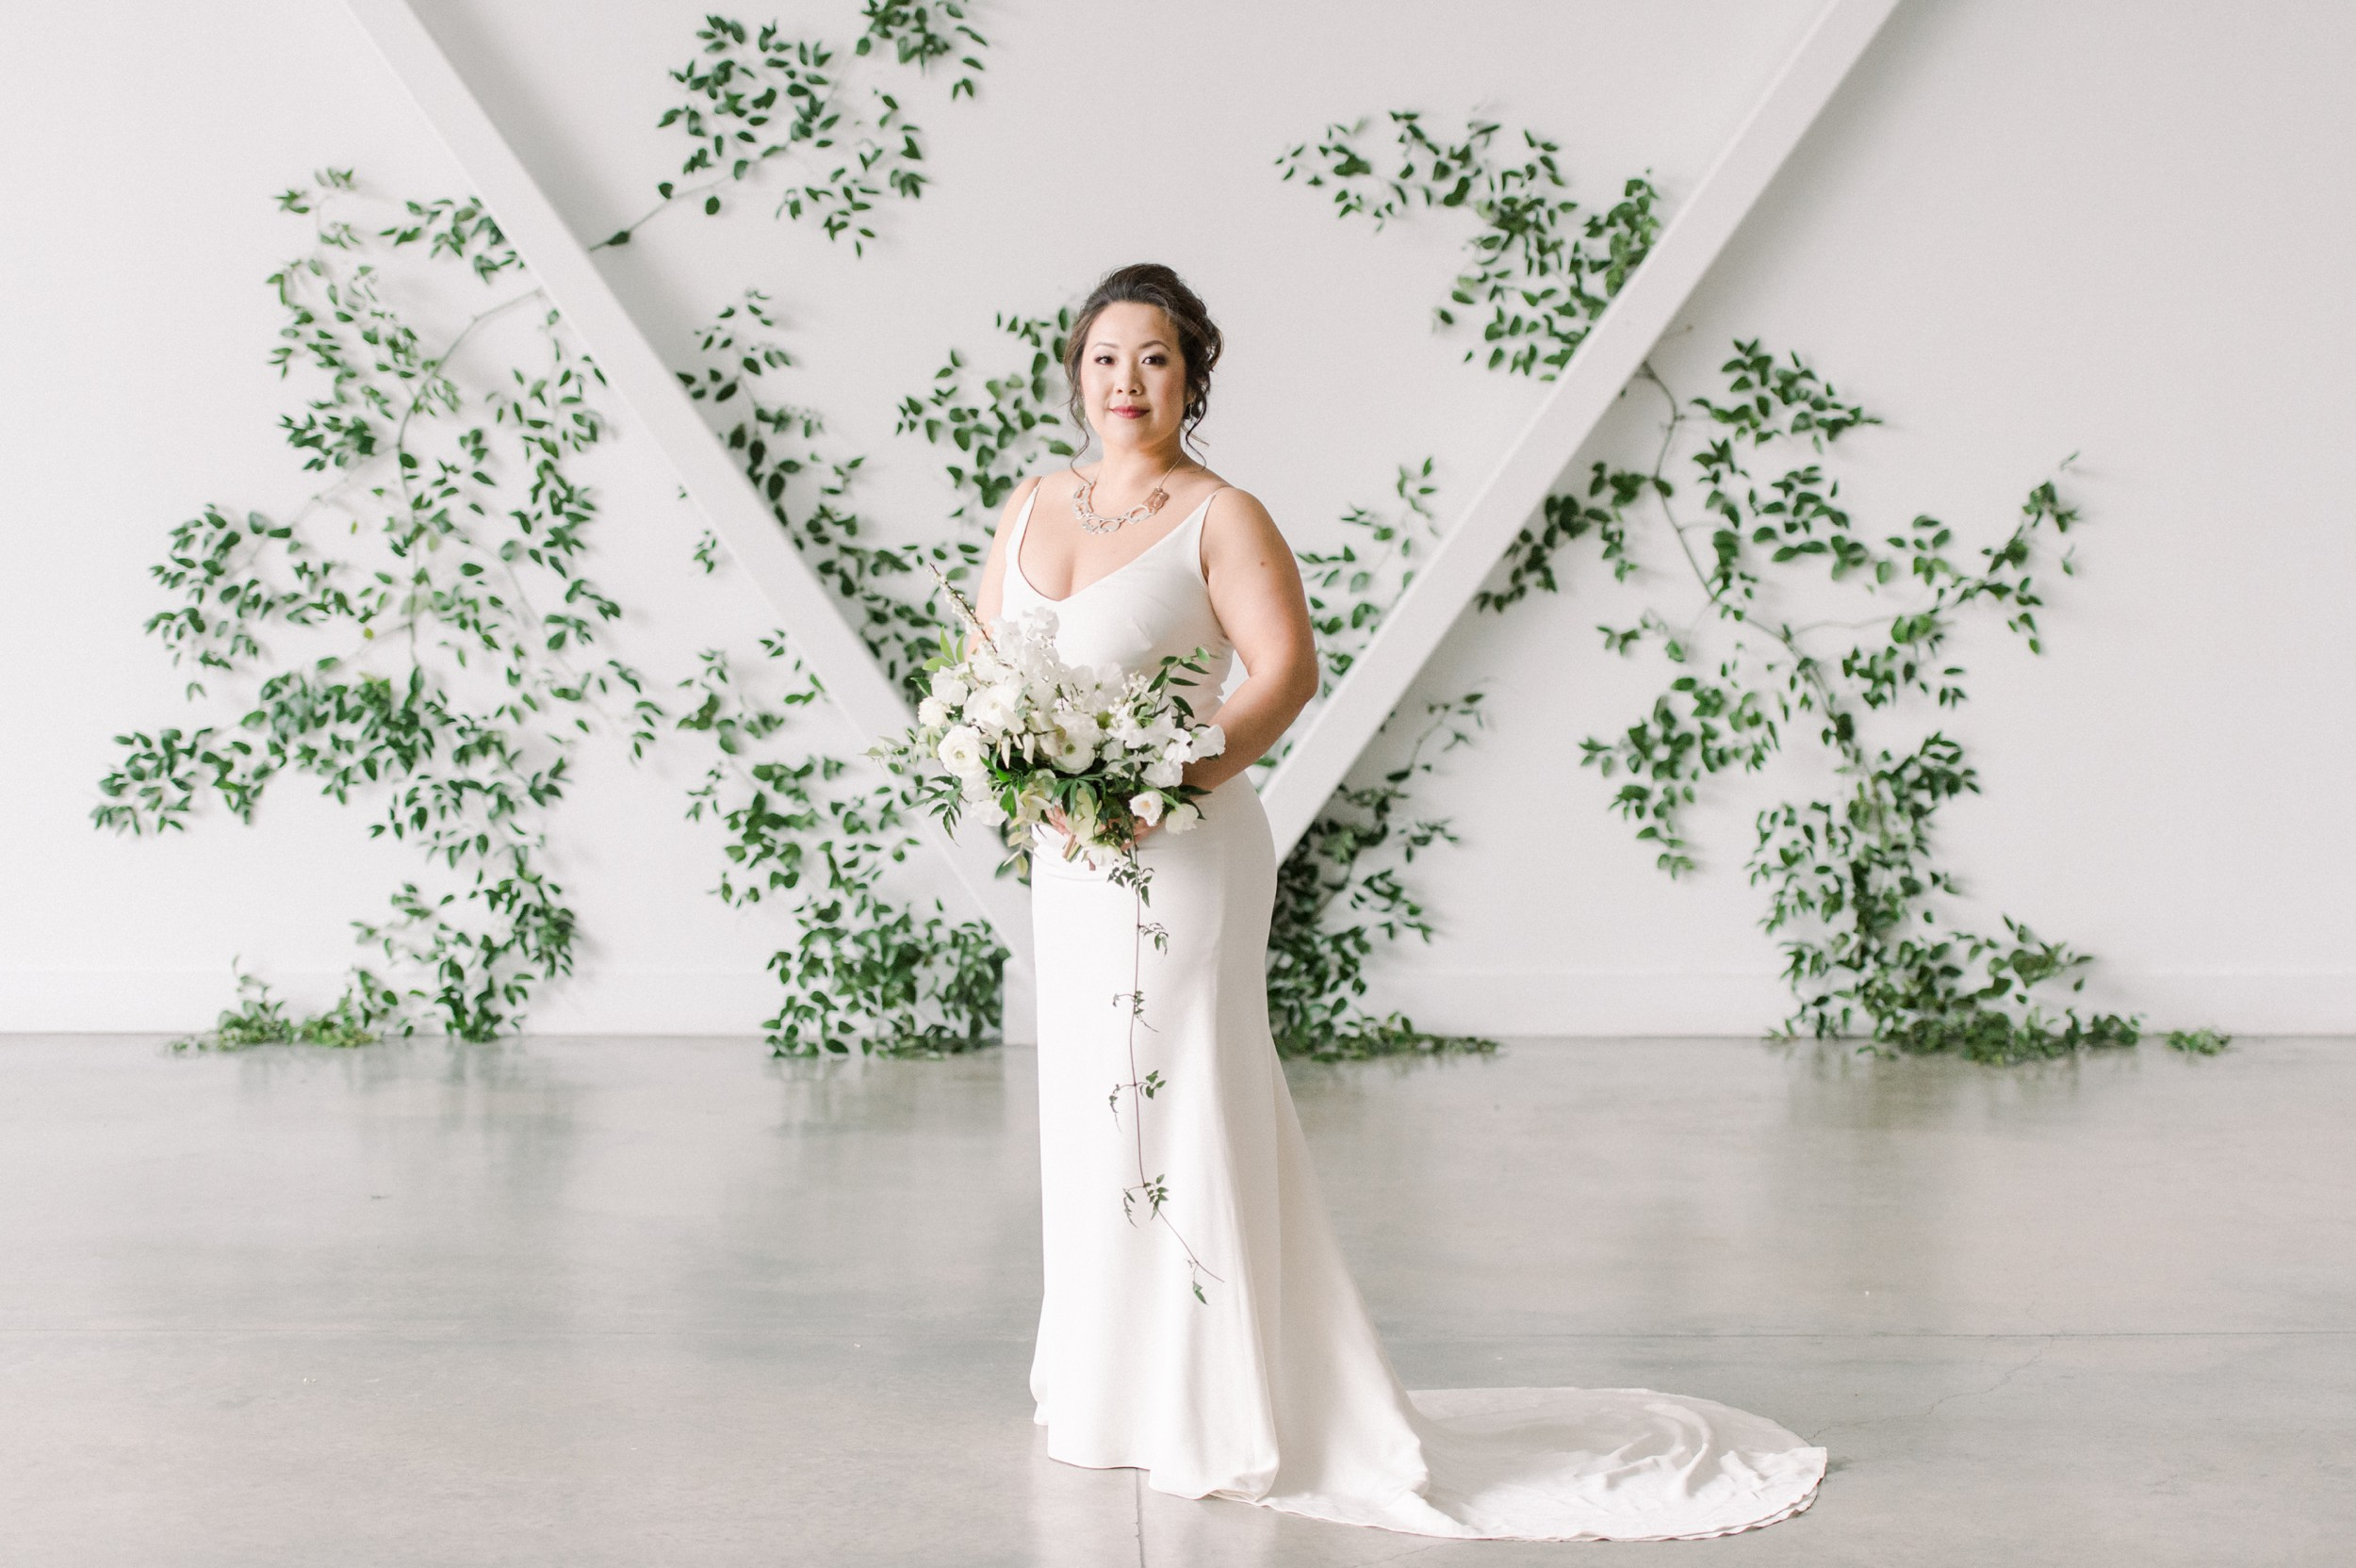 Jann Marie Bridal Wedding Dress | Artists for humanity epicenter wedding | Boston wedding | green botanical wedding inspiration | bridal style